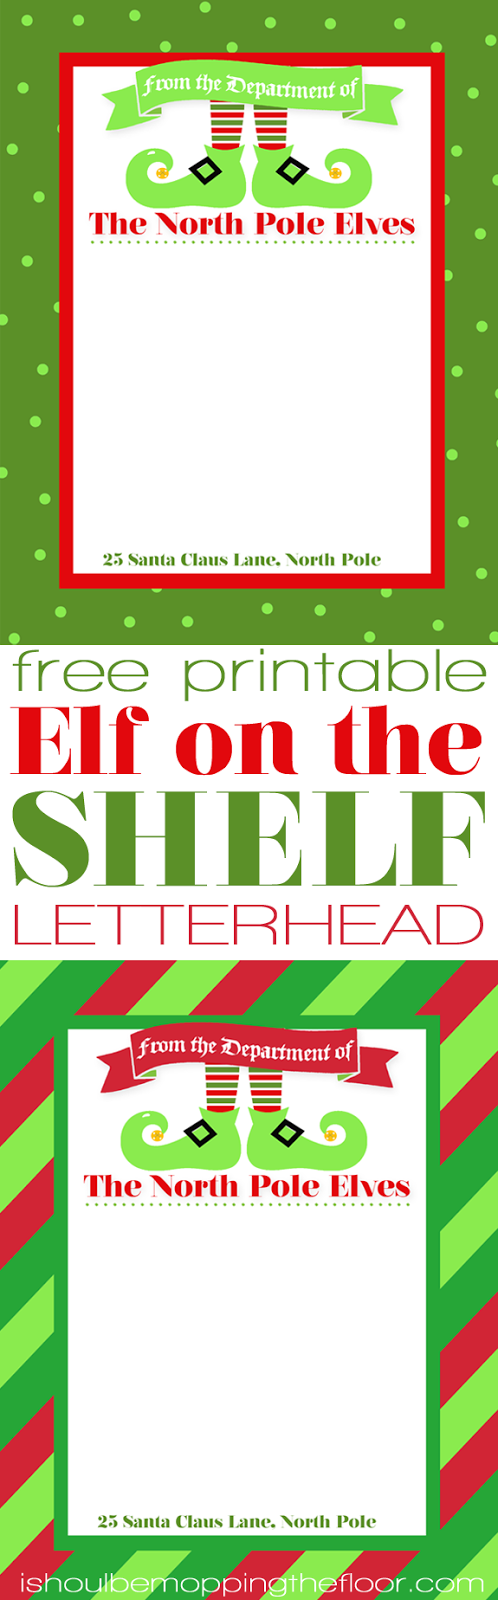 Elf on the Shelf Letterhead The North Pole Elves